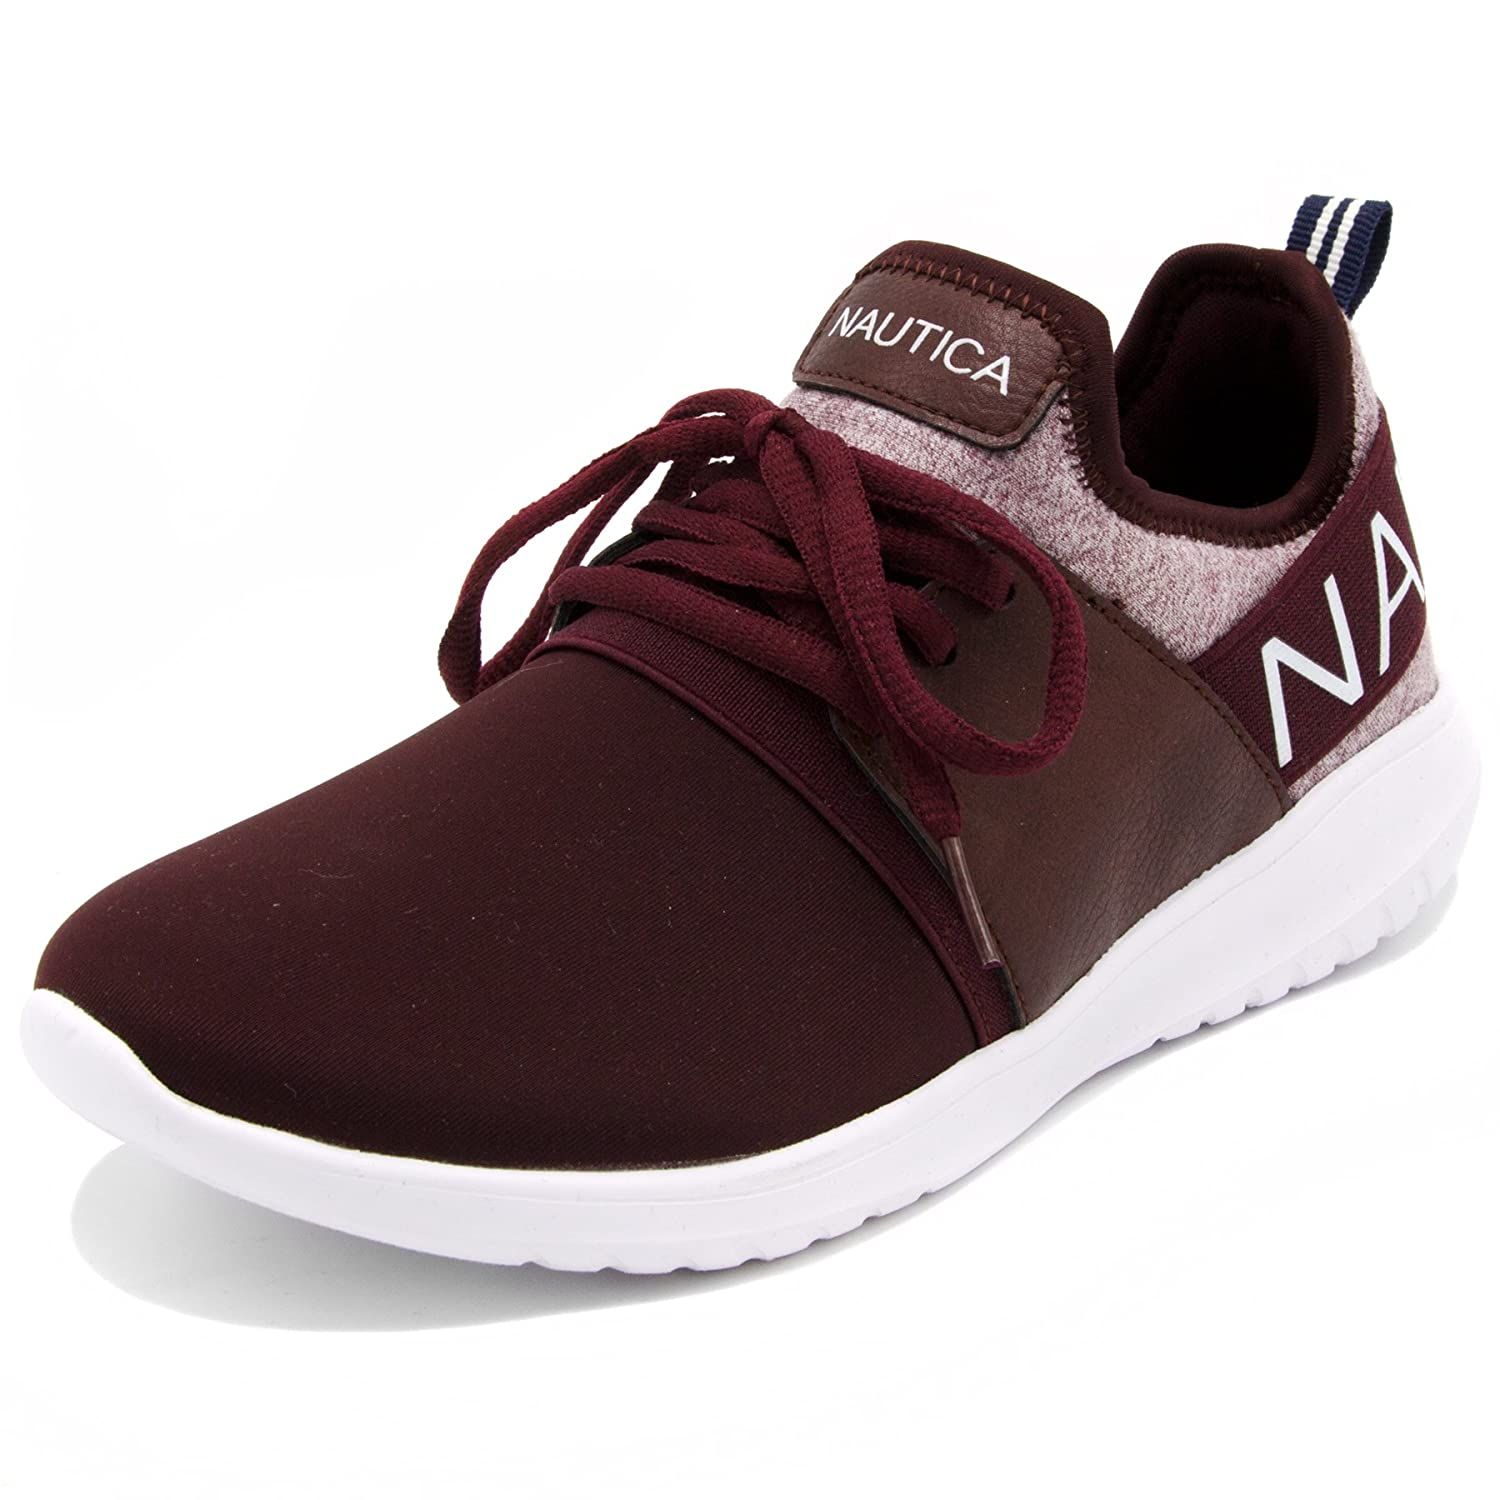 Nautica Women Fashion Jogger Sneaker (Lace-up/Slip-On) B07D4MQS1P 6.5 B(M) US|Burgandy Heather Lace-up